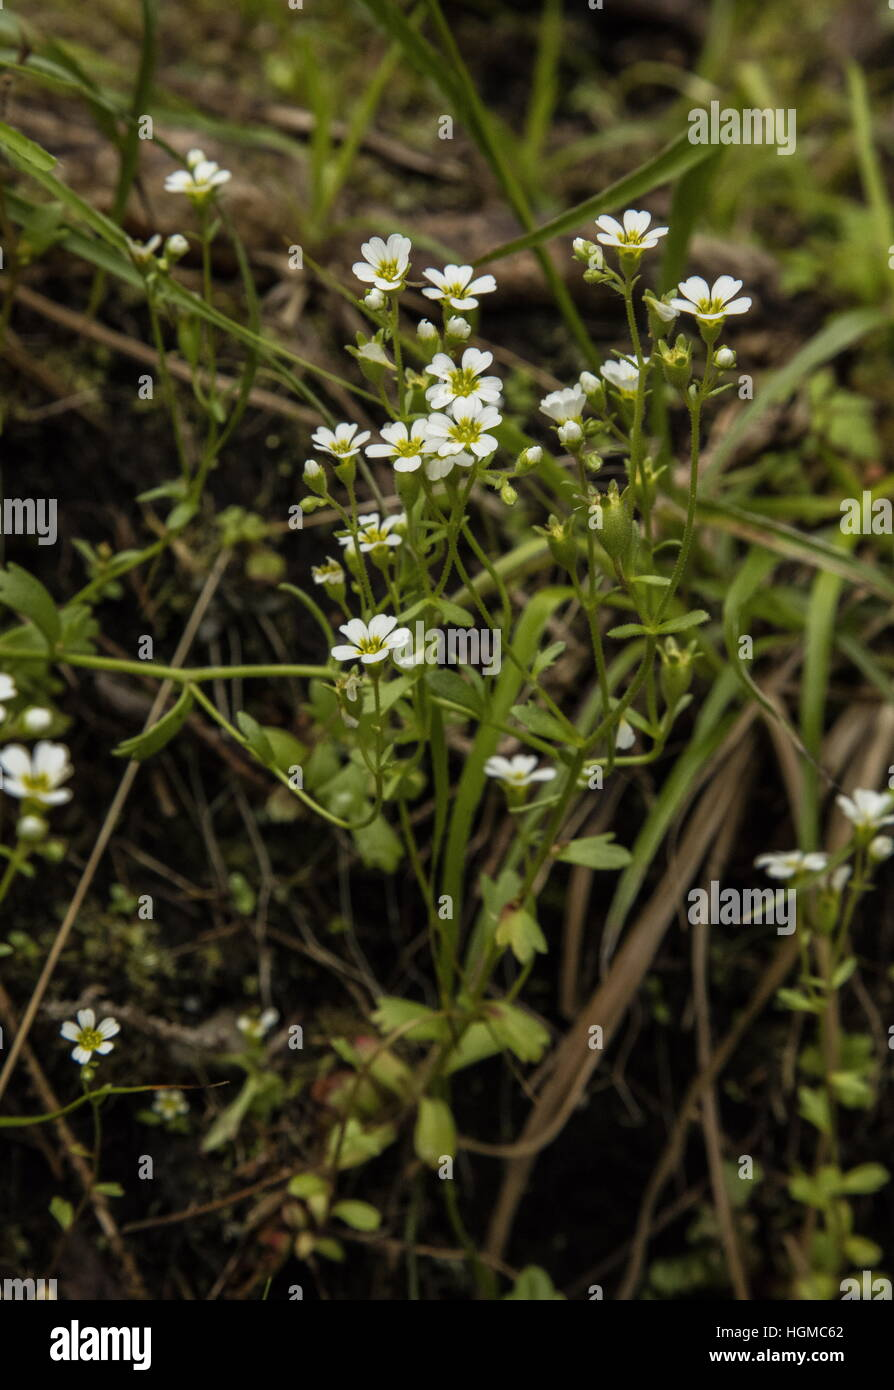 Biennial saxifrage Saxifraga adscendens, in flower in the Tatra mountains, Poland. - Stock Image